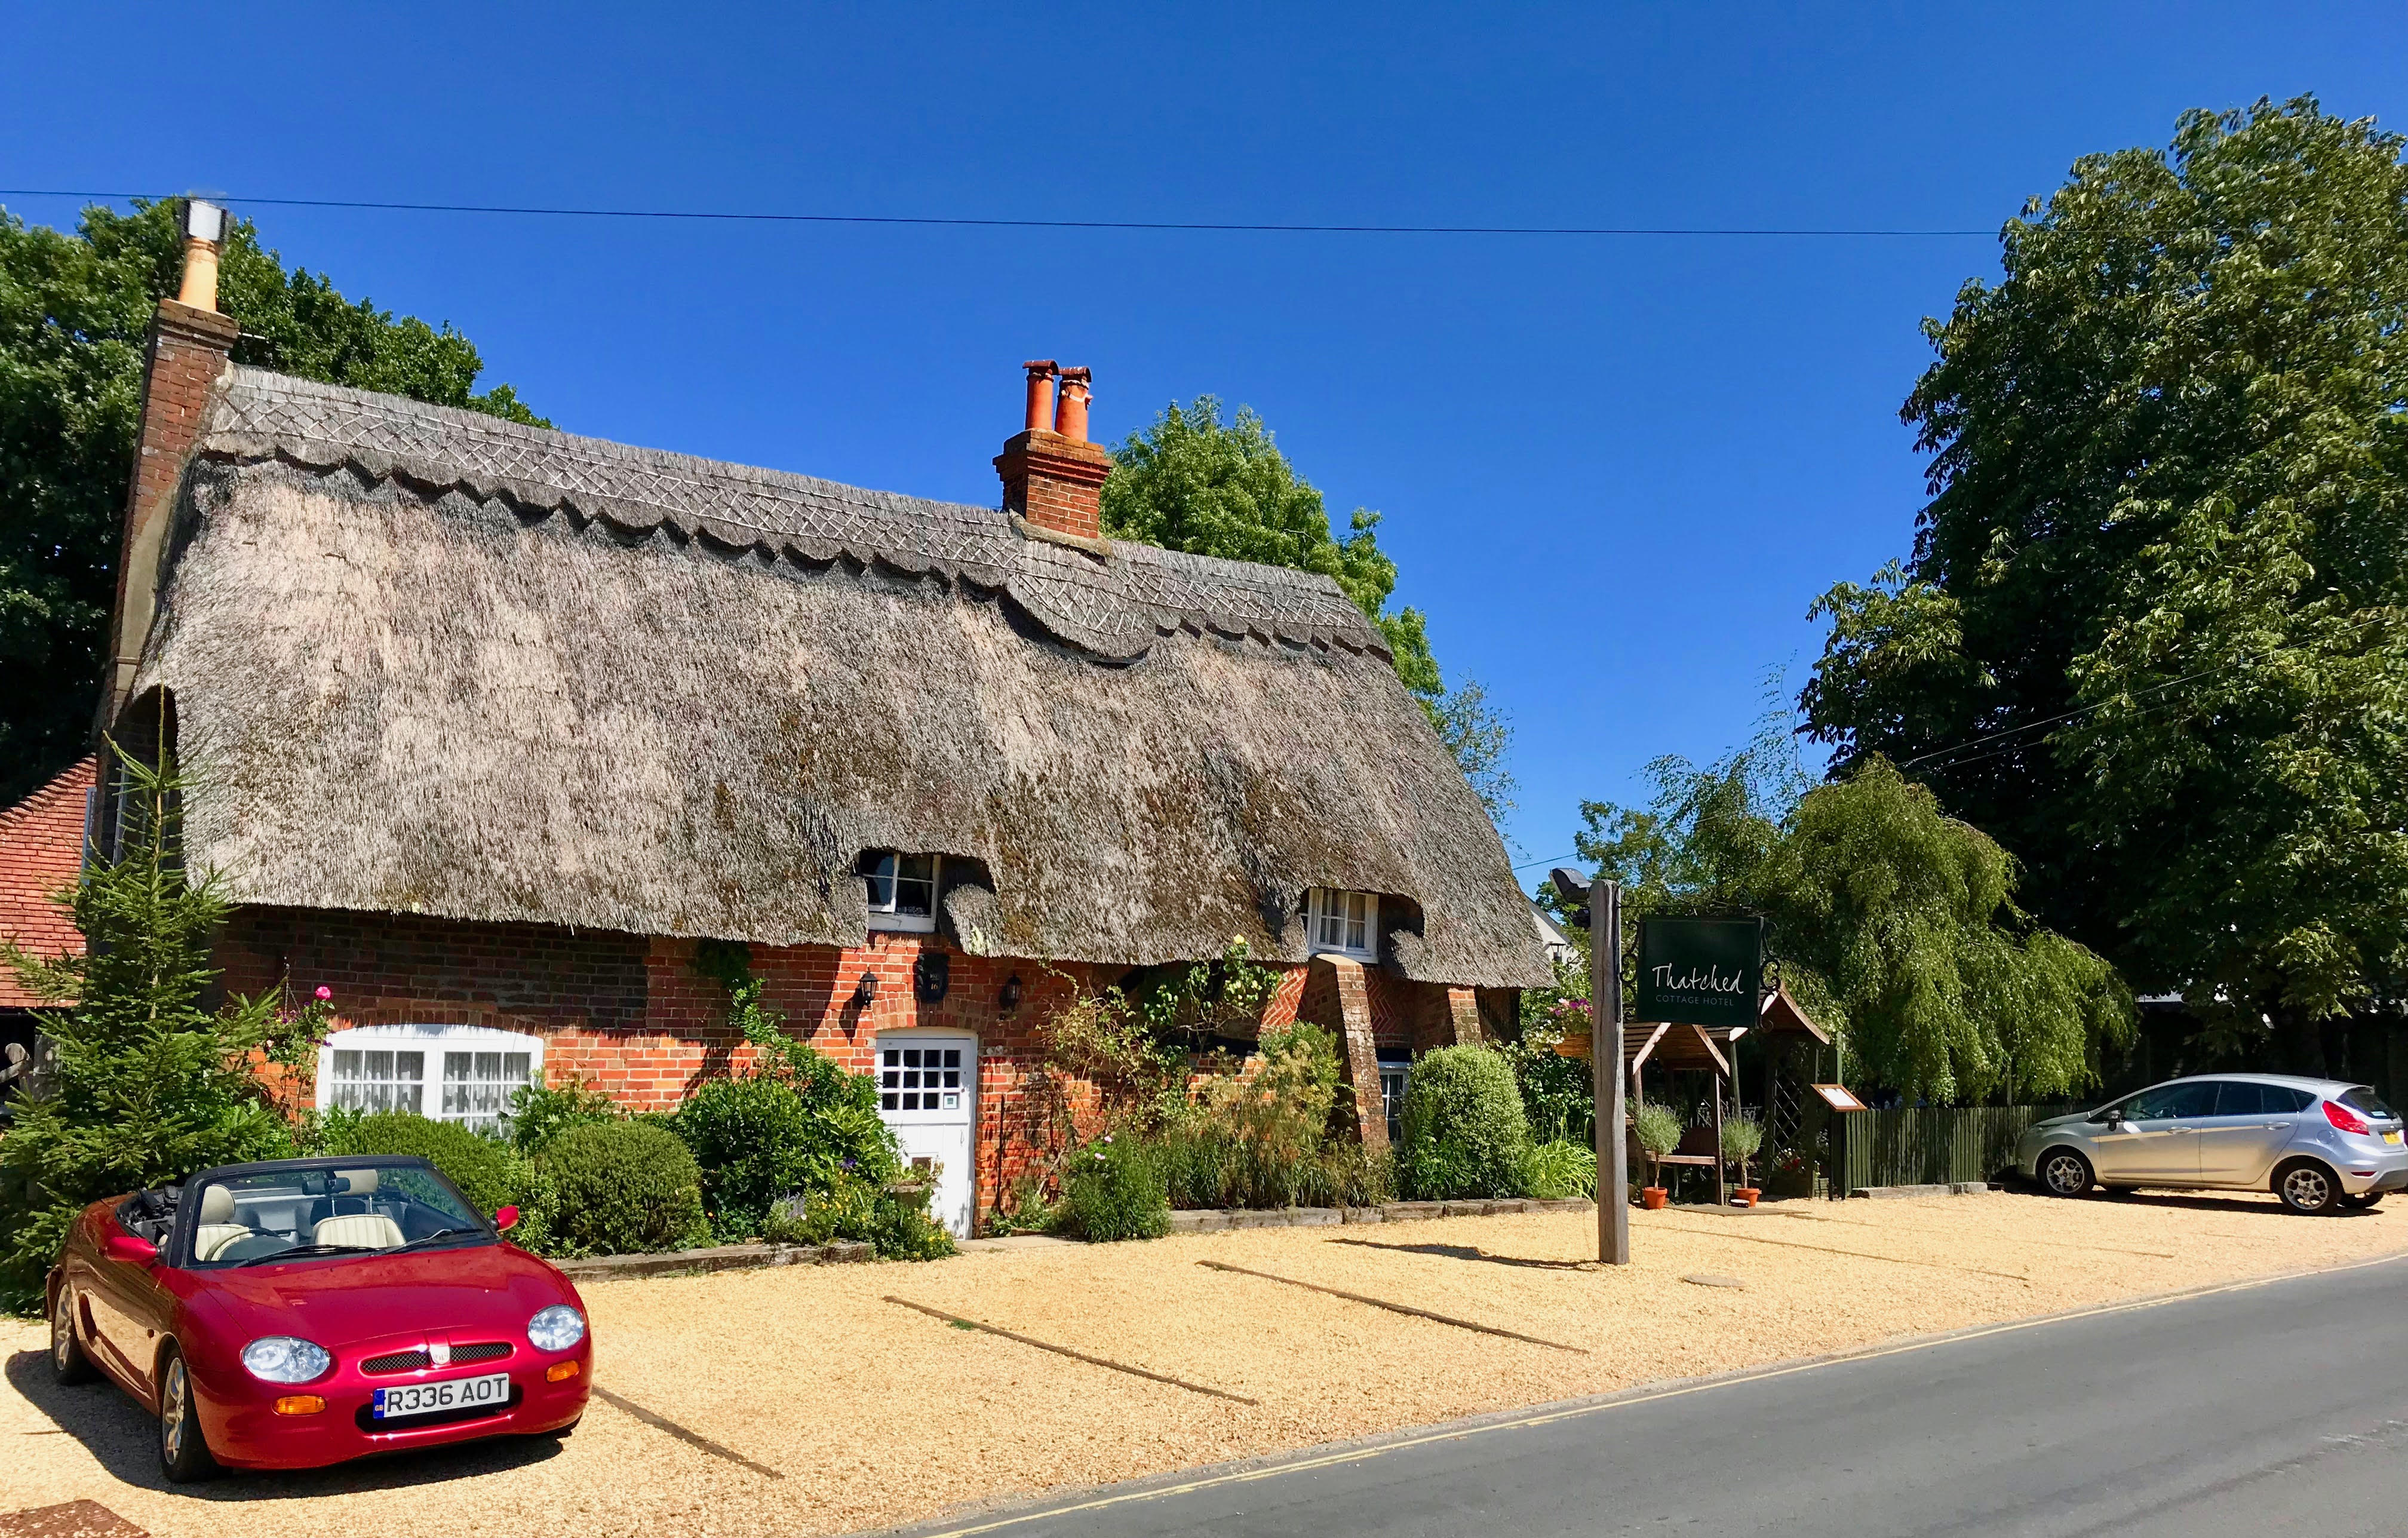 Thatched Cottage Hotel Image